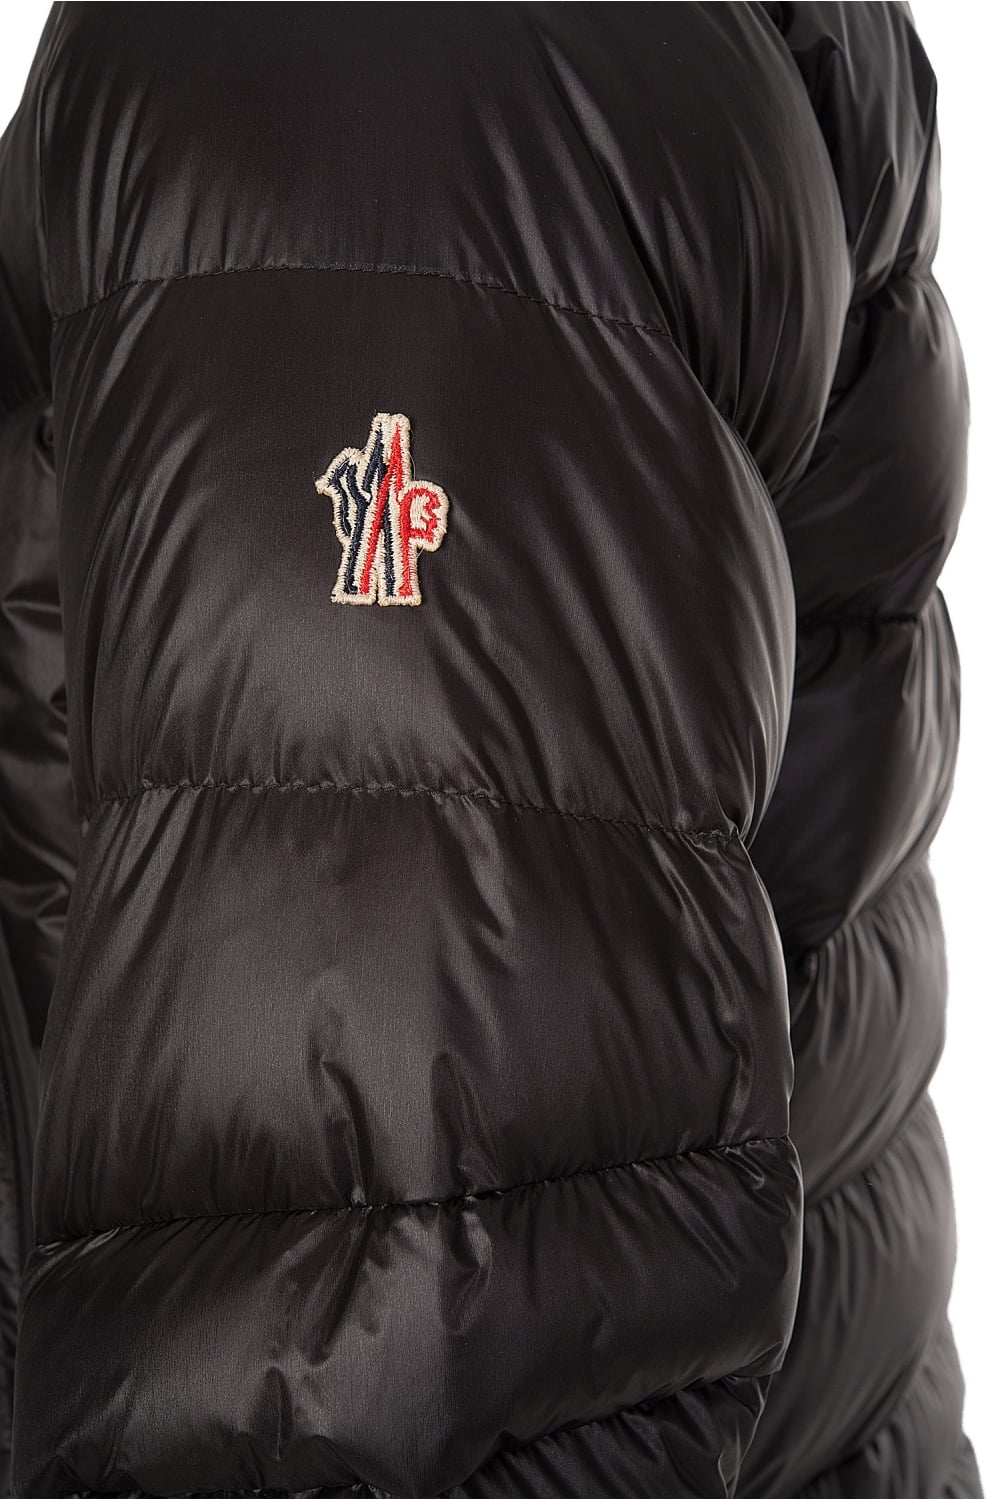 MONCLER Grenoble Canmore Jacket Black